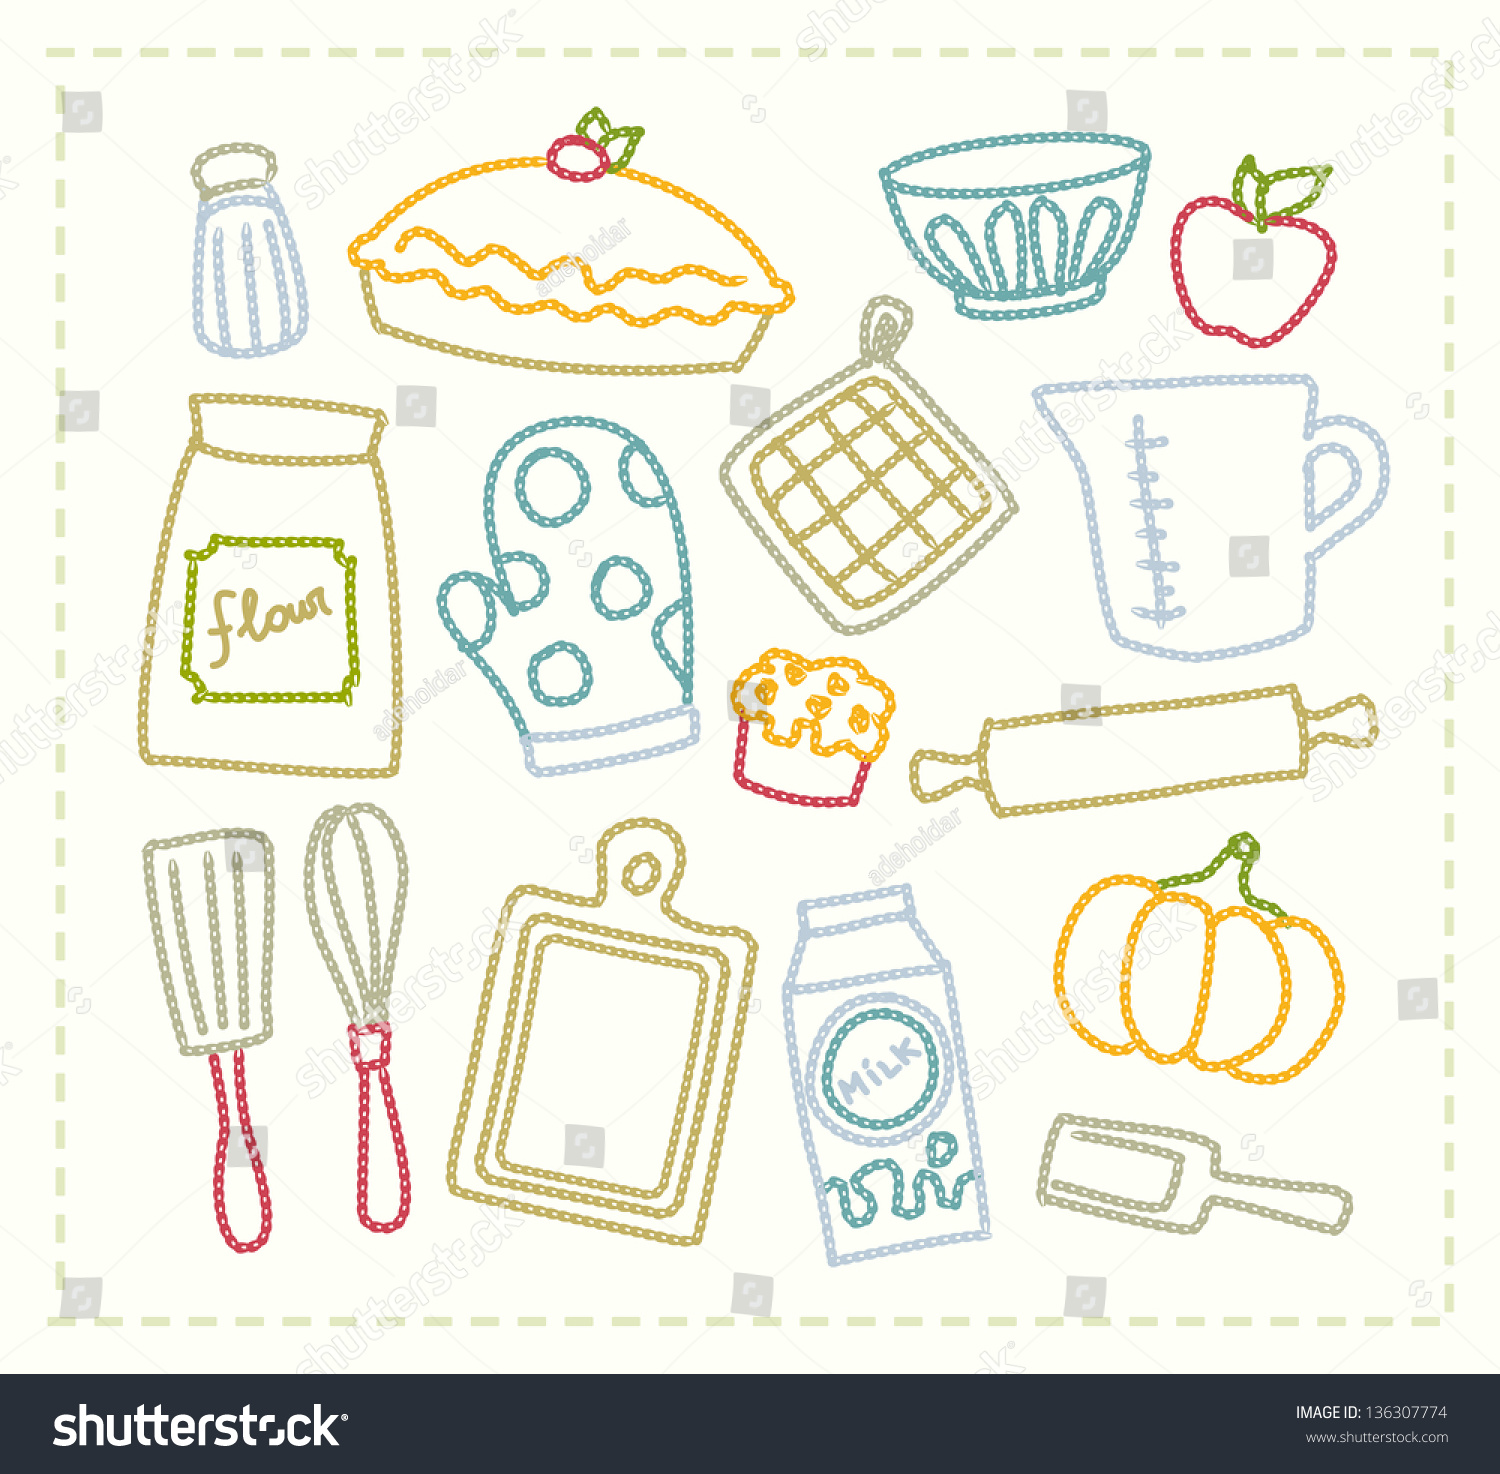 Baking Supplies Illustration 28640